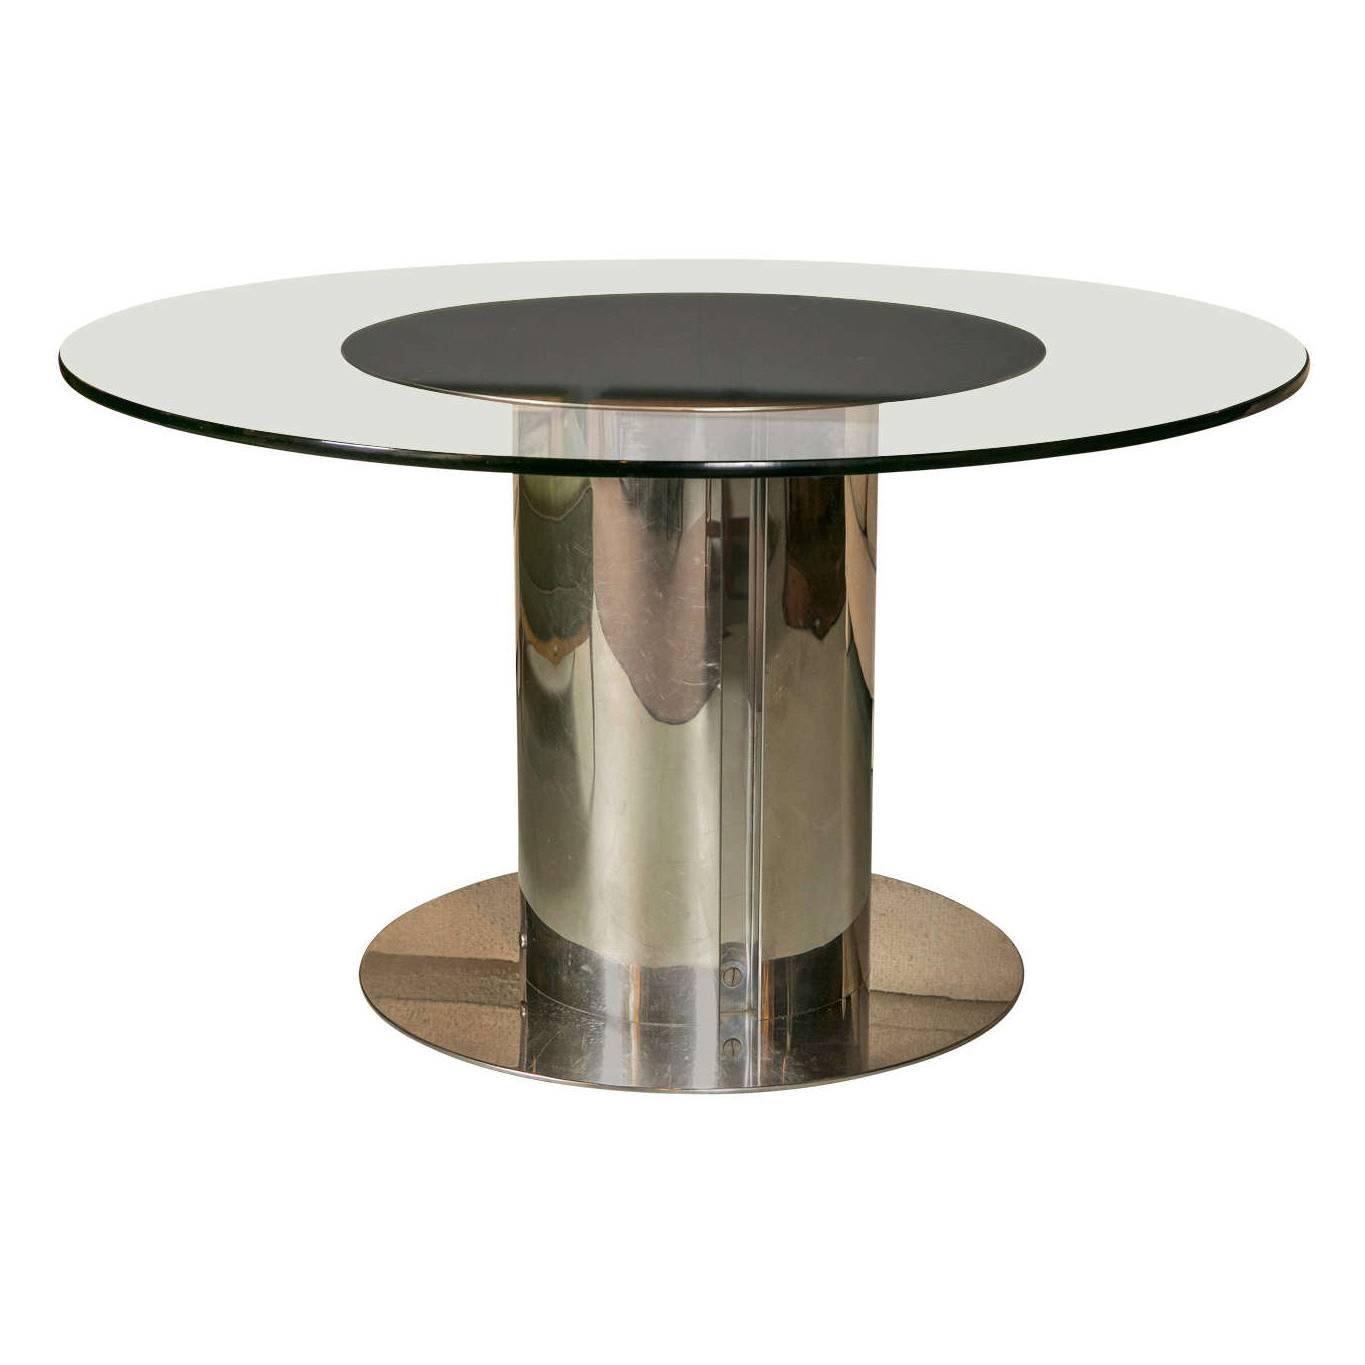 1980s Chrome And Glass Round Dining Table For Sale At 1stdibs